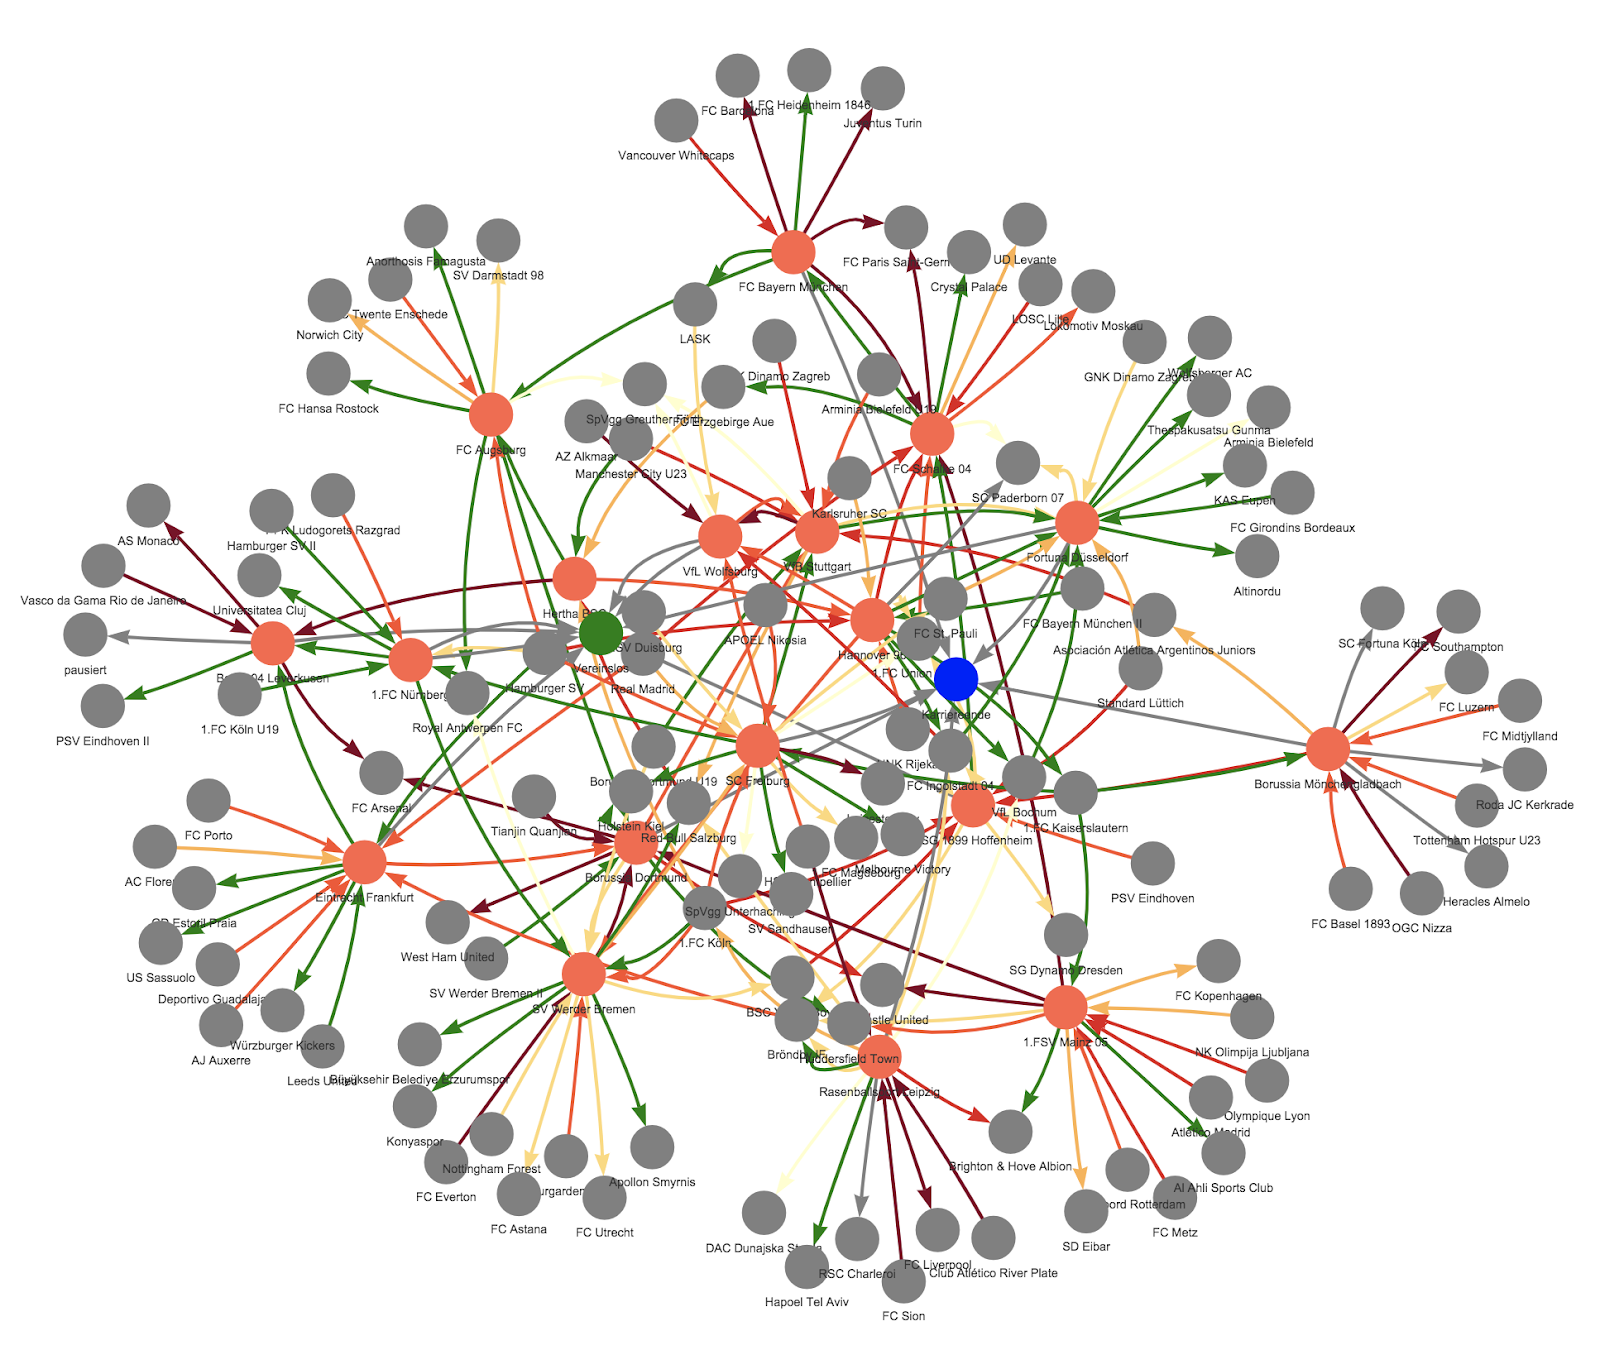 network visualization of football transfers using the visnetwork package